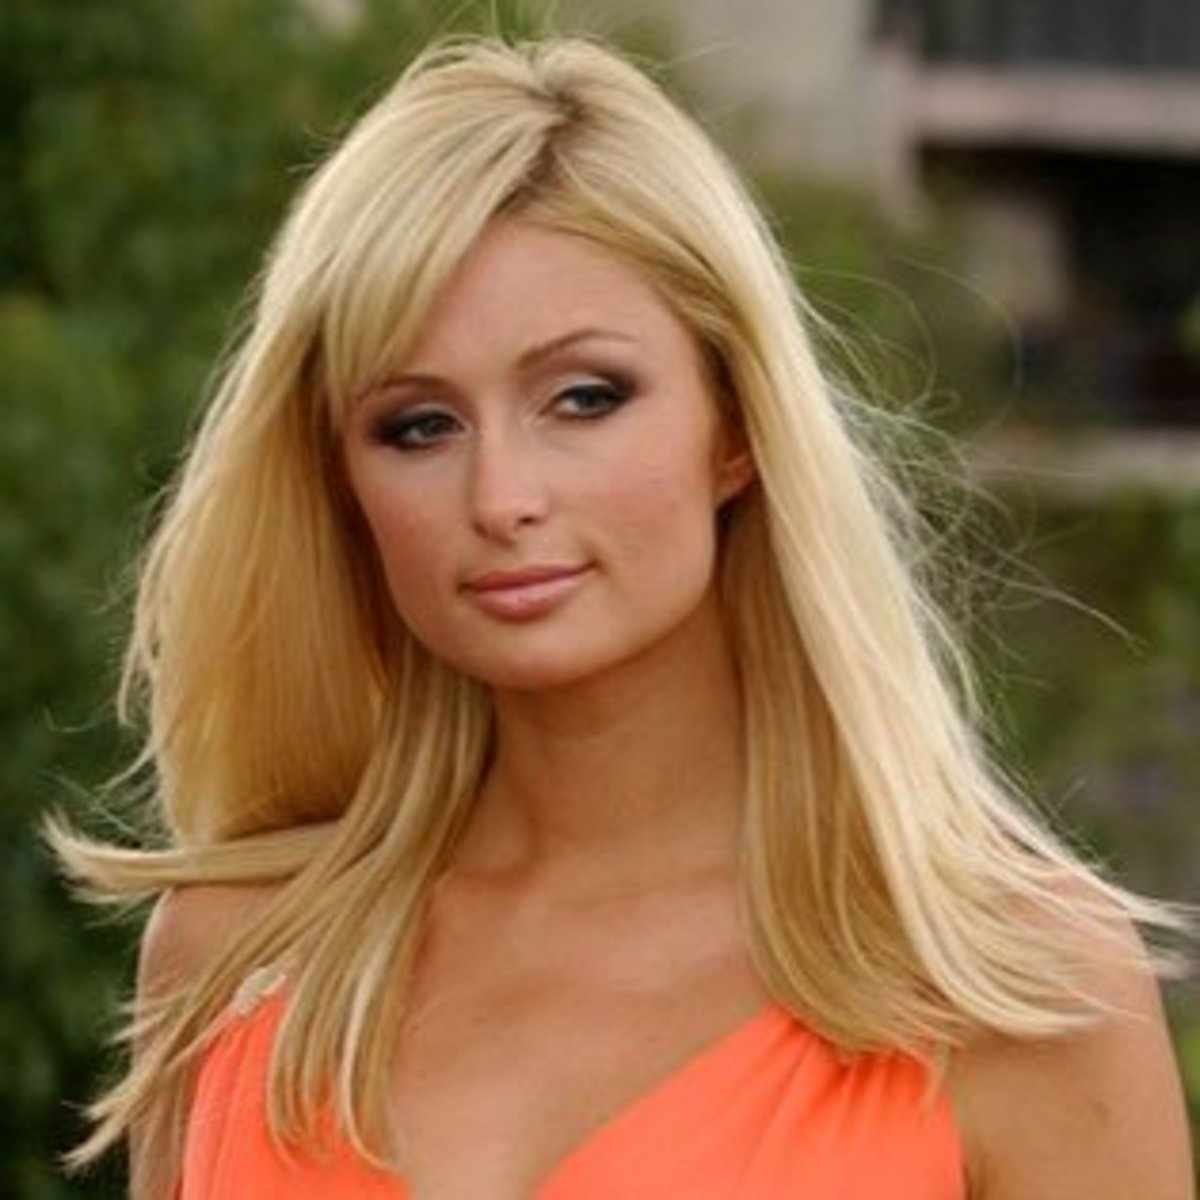 Square face women celebrities: Paris Hilton